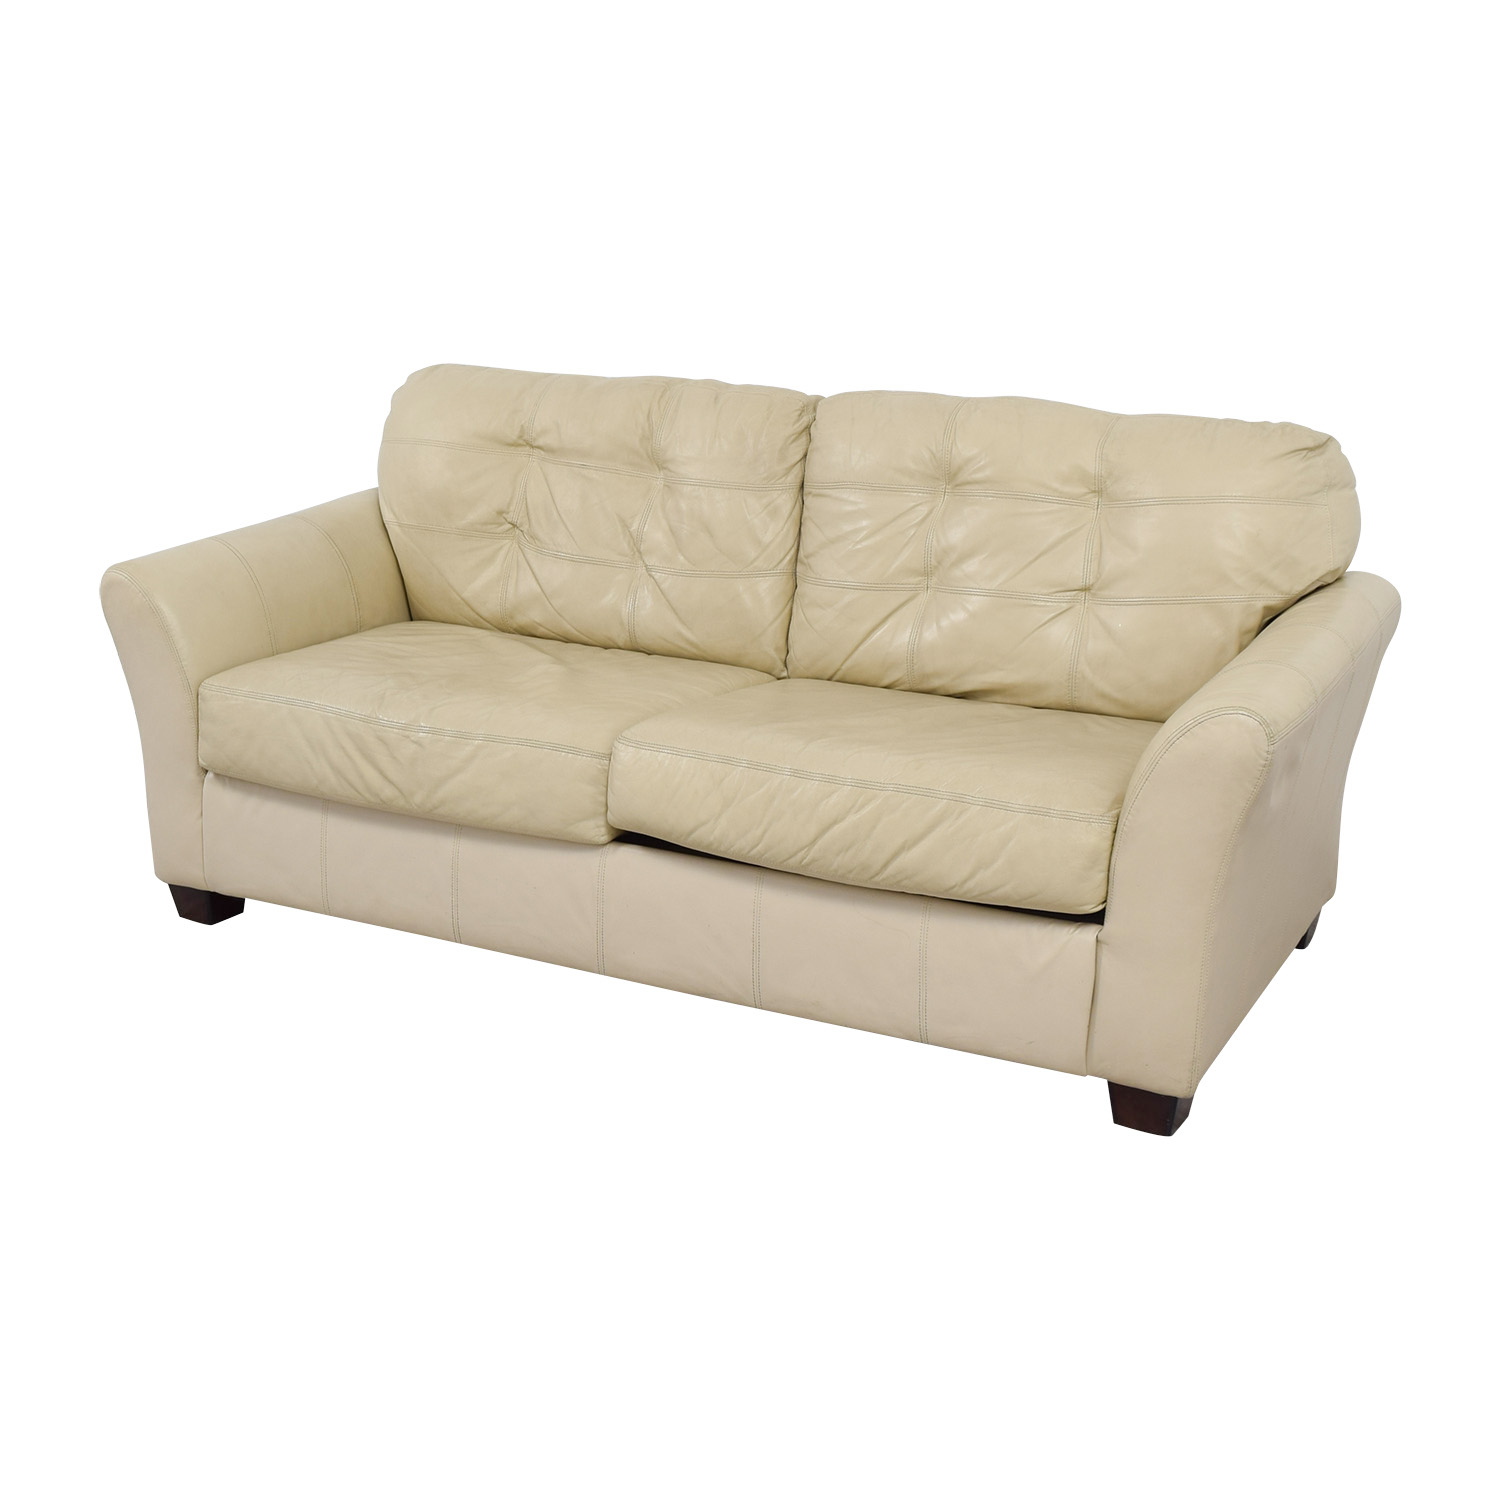 Ashley Leather Sofa: Ashley Furniture Ashley Furniture Tufted Cream